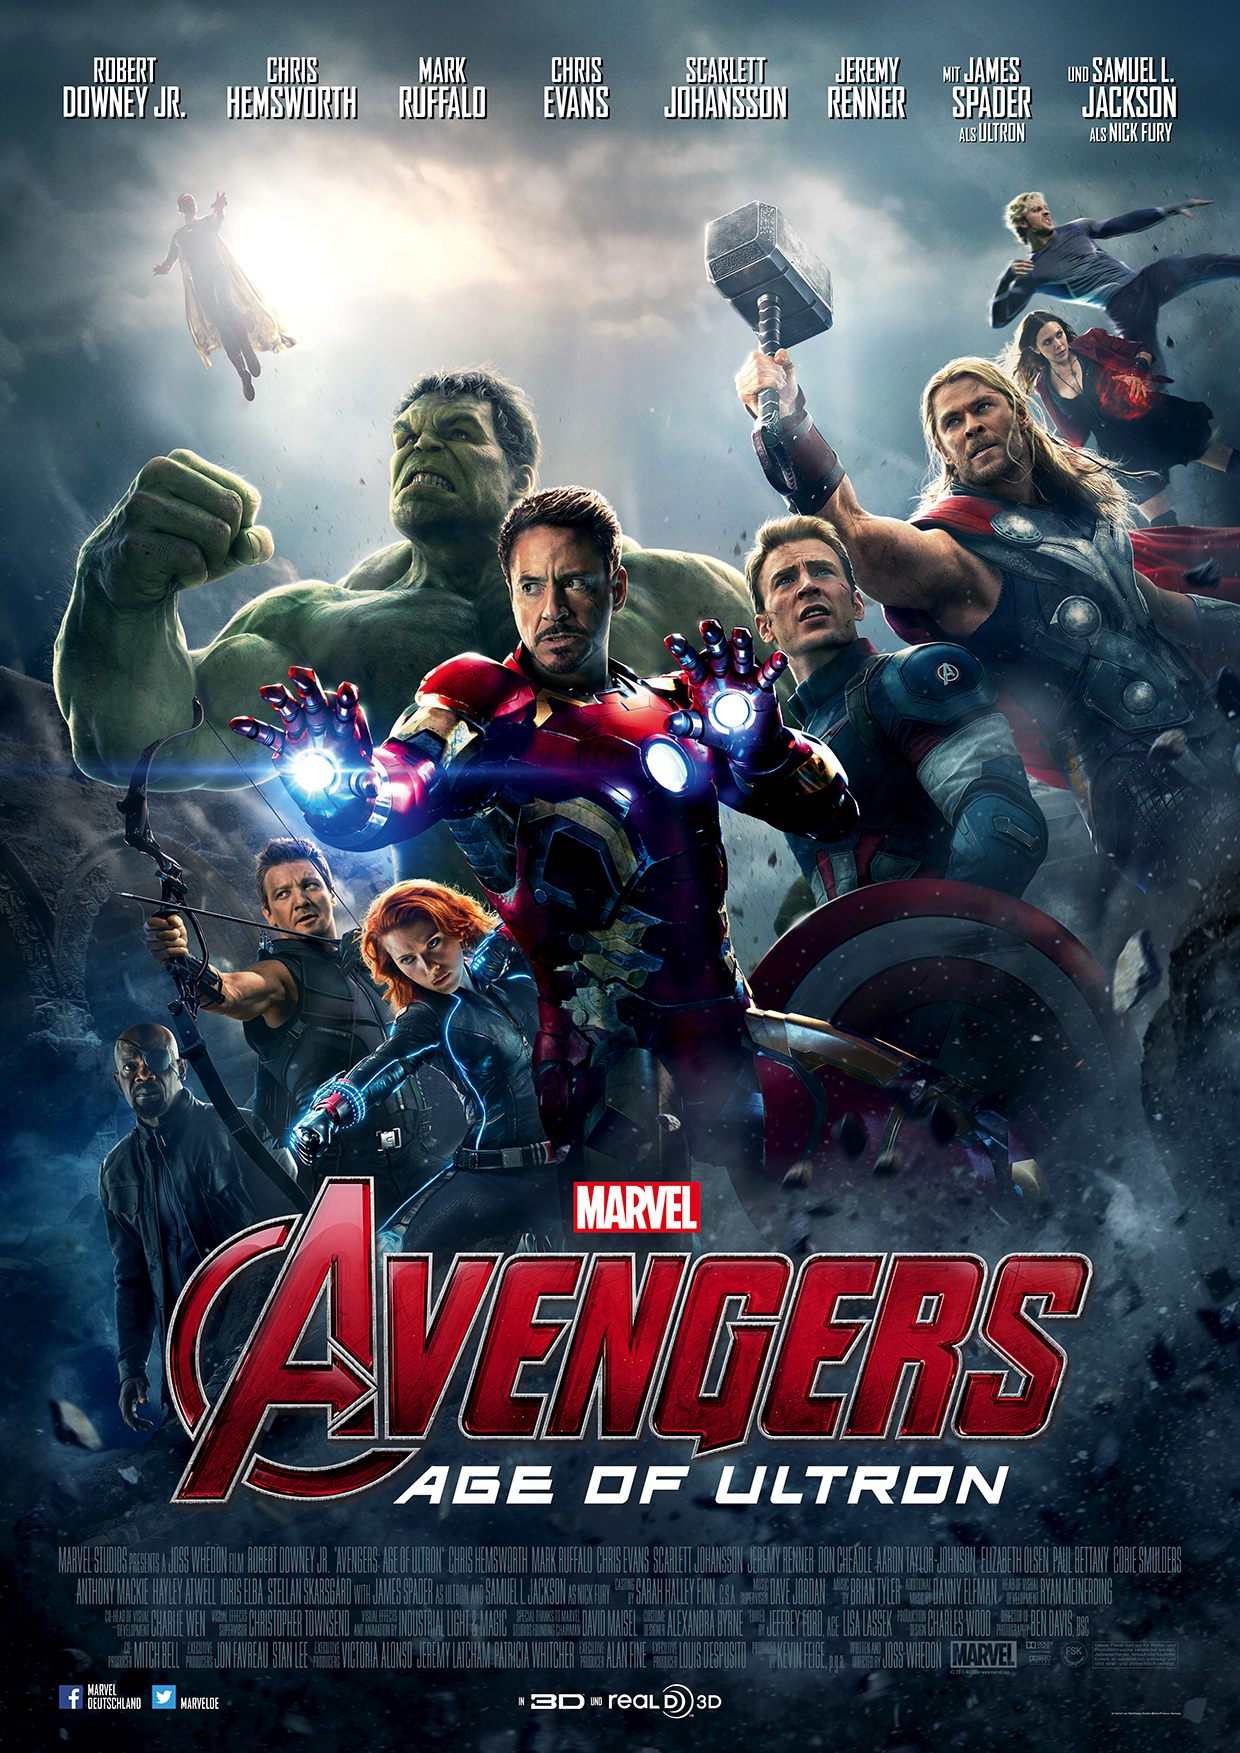 Marvel's Avengers: Age of Ultron Posters